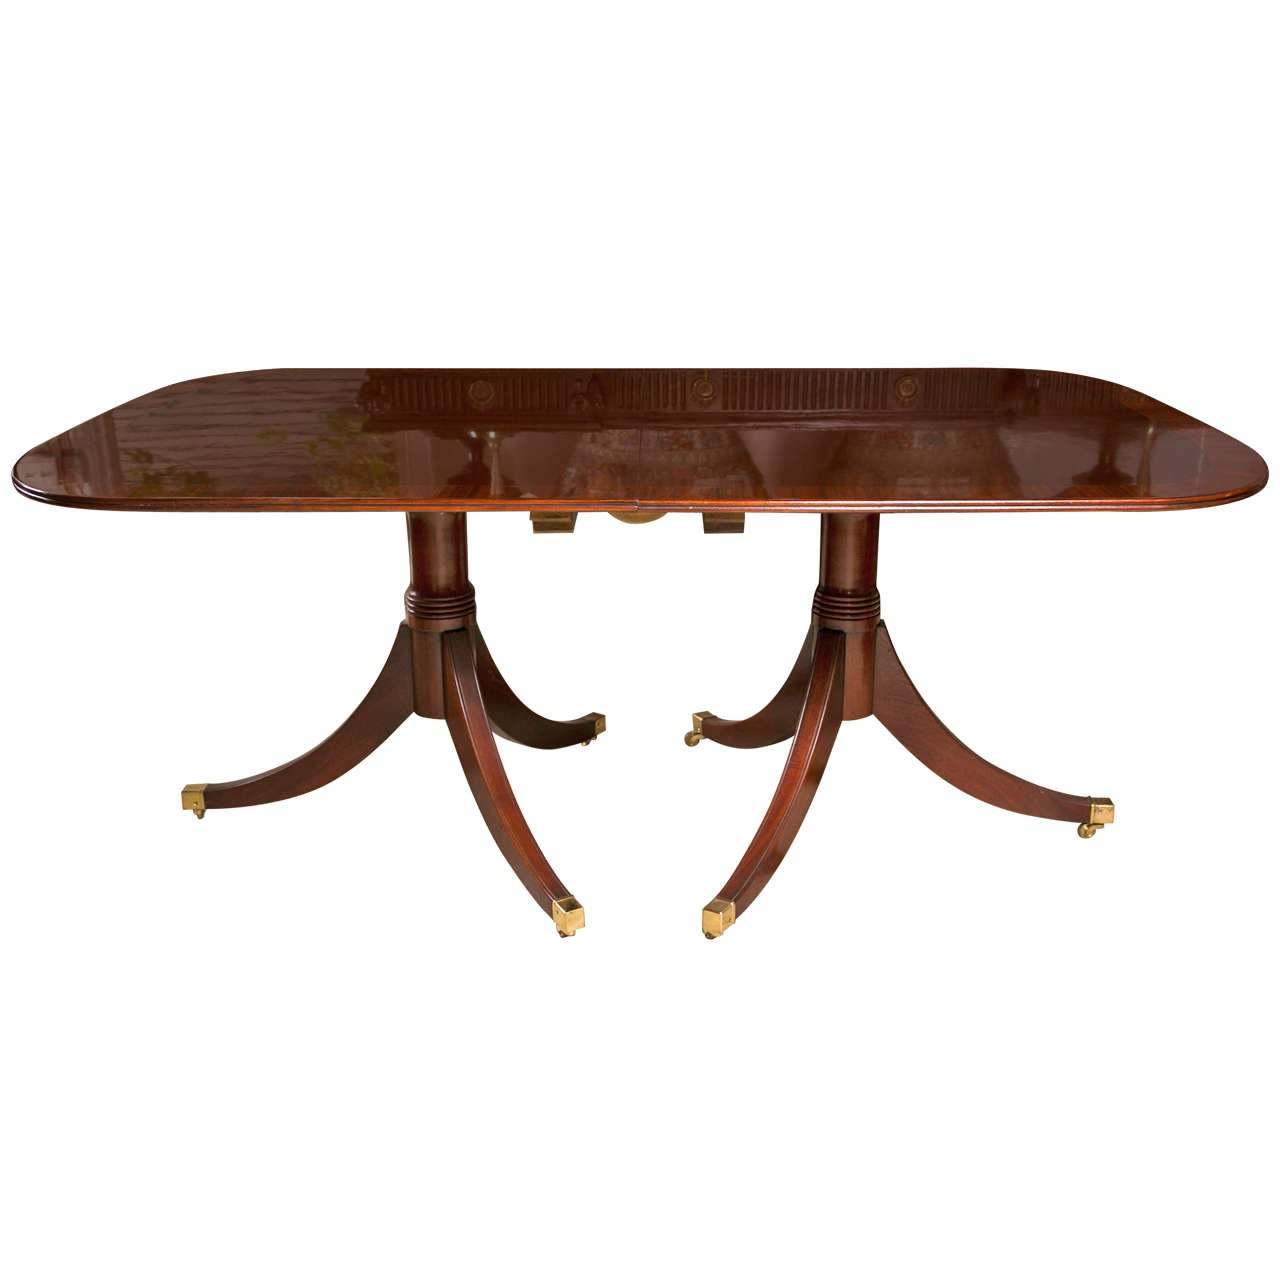 for Dining room tables 120 inches